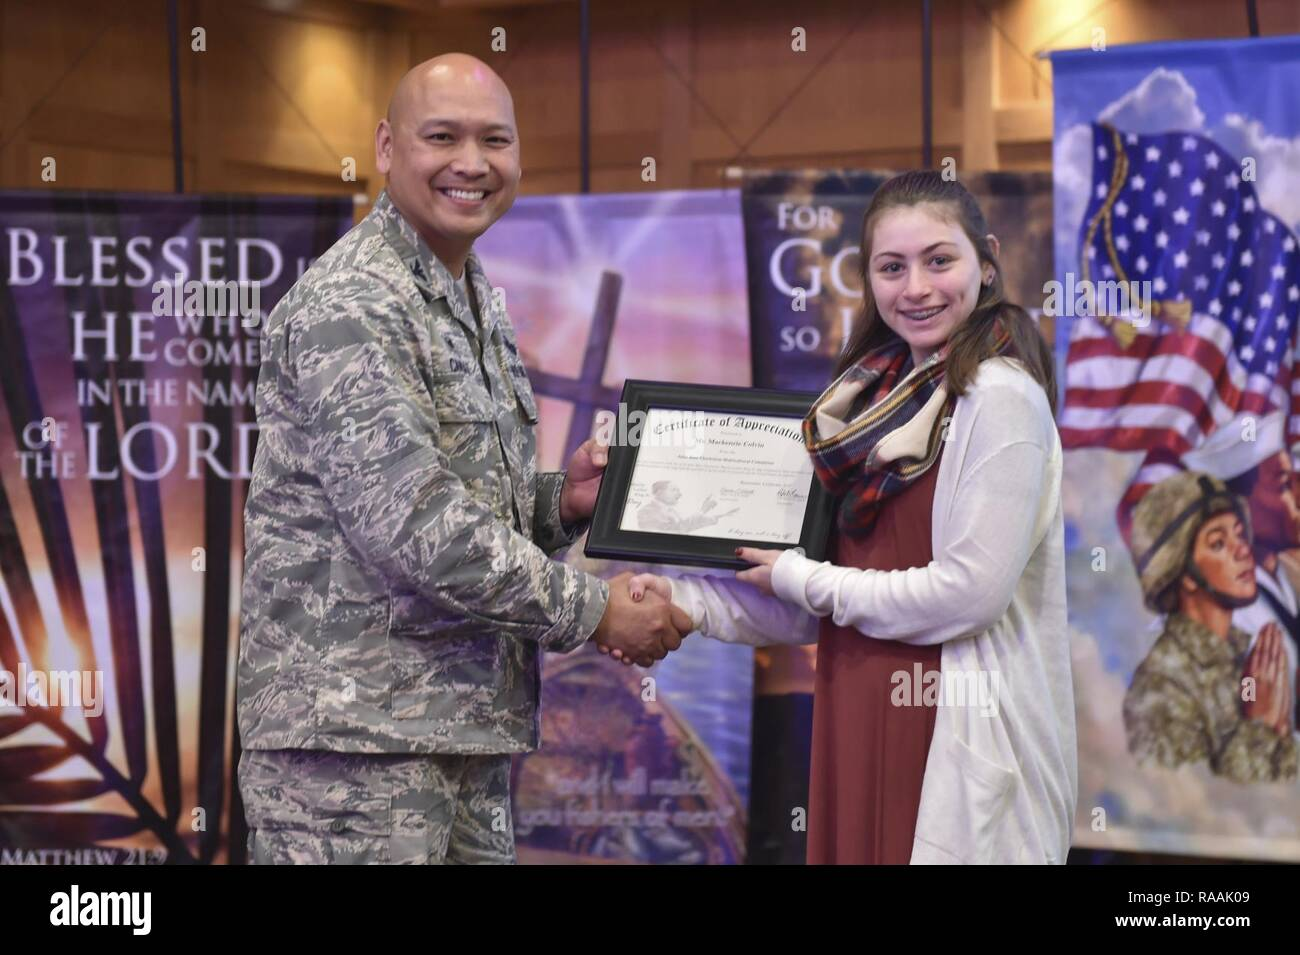 U.S. Air Force Col. Jimmy Canlas, 437 Airlift Wing commander, presents Mackenzie Colvin, a student from Gregg Middle School, with a certificate of appreciation during the Dr. Martin Luther King Jr. remembrance event at the Air Base Chapel Jan. 17, 2017 at Joint Base Charleston, South Carolina. Colvin recited a speech written by King during the ceremony. - Stock Image